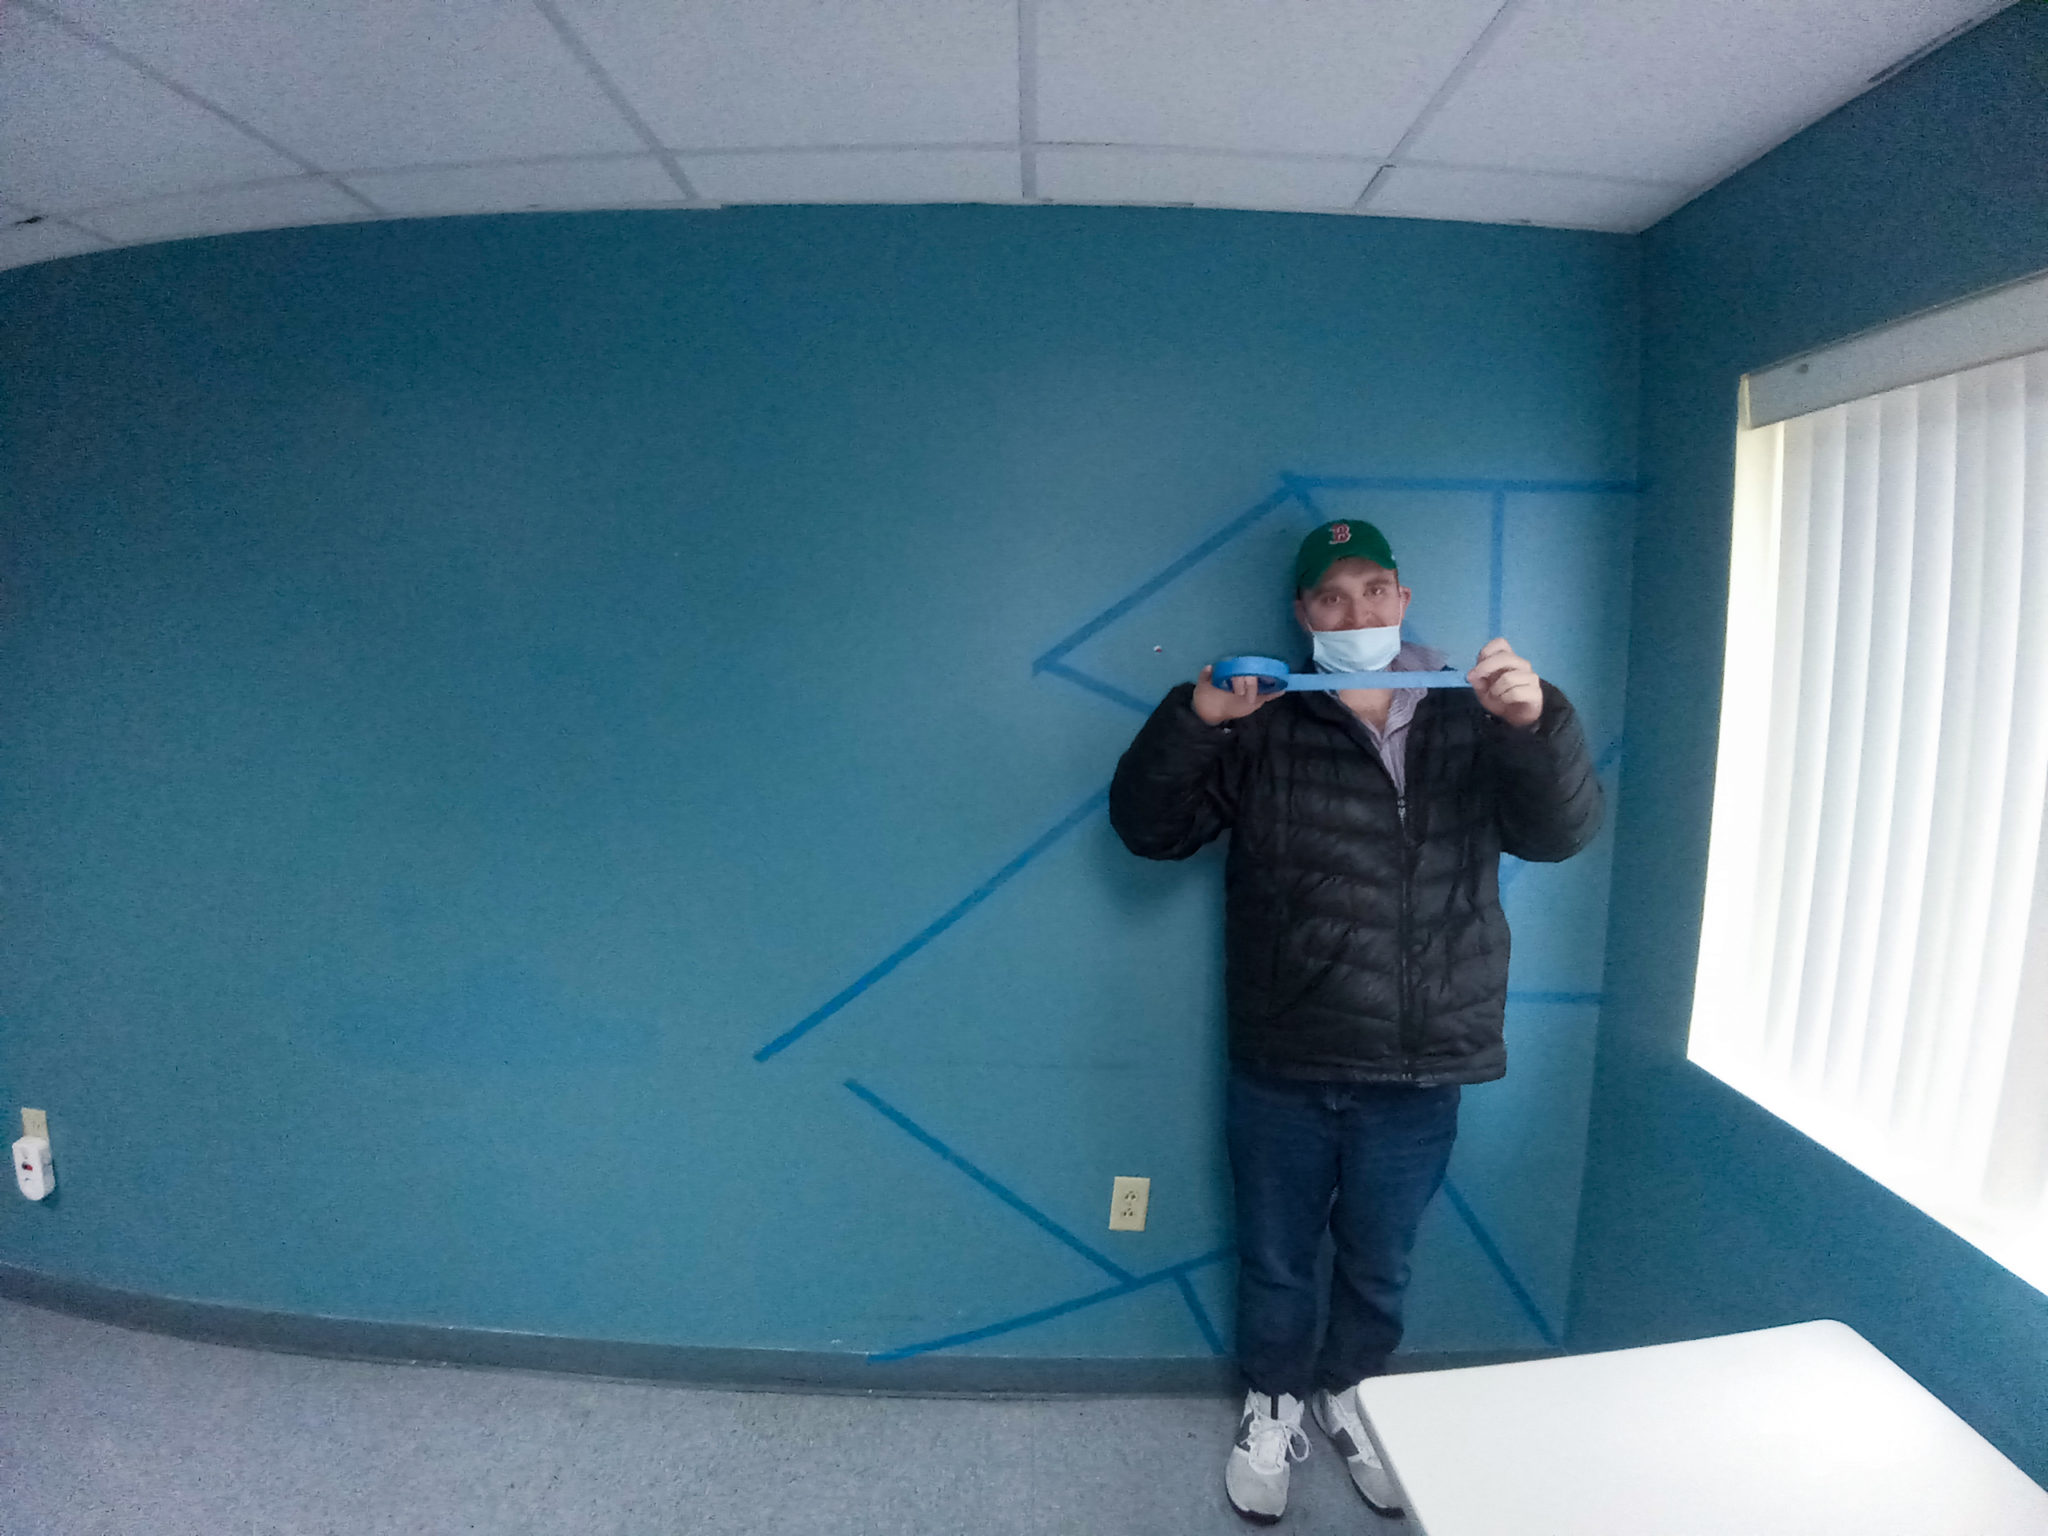 A man we support begins taping the abstract designs on the wall